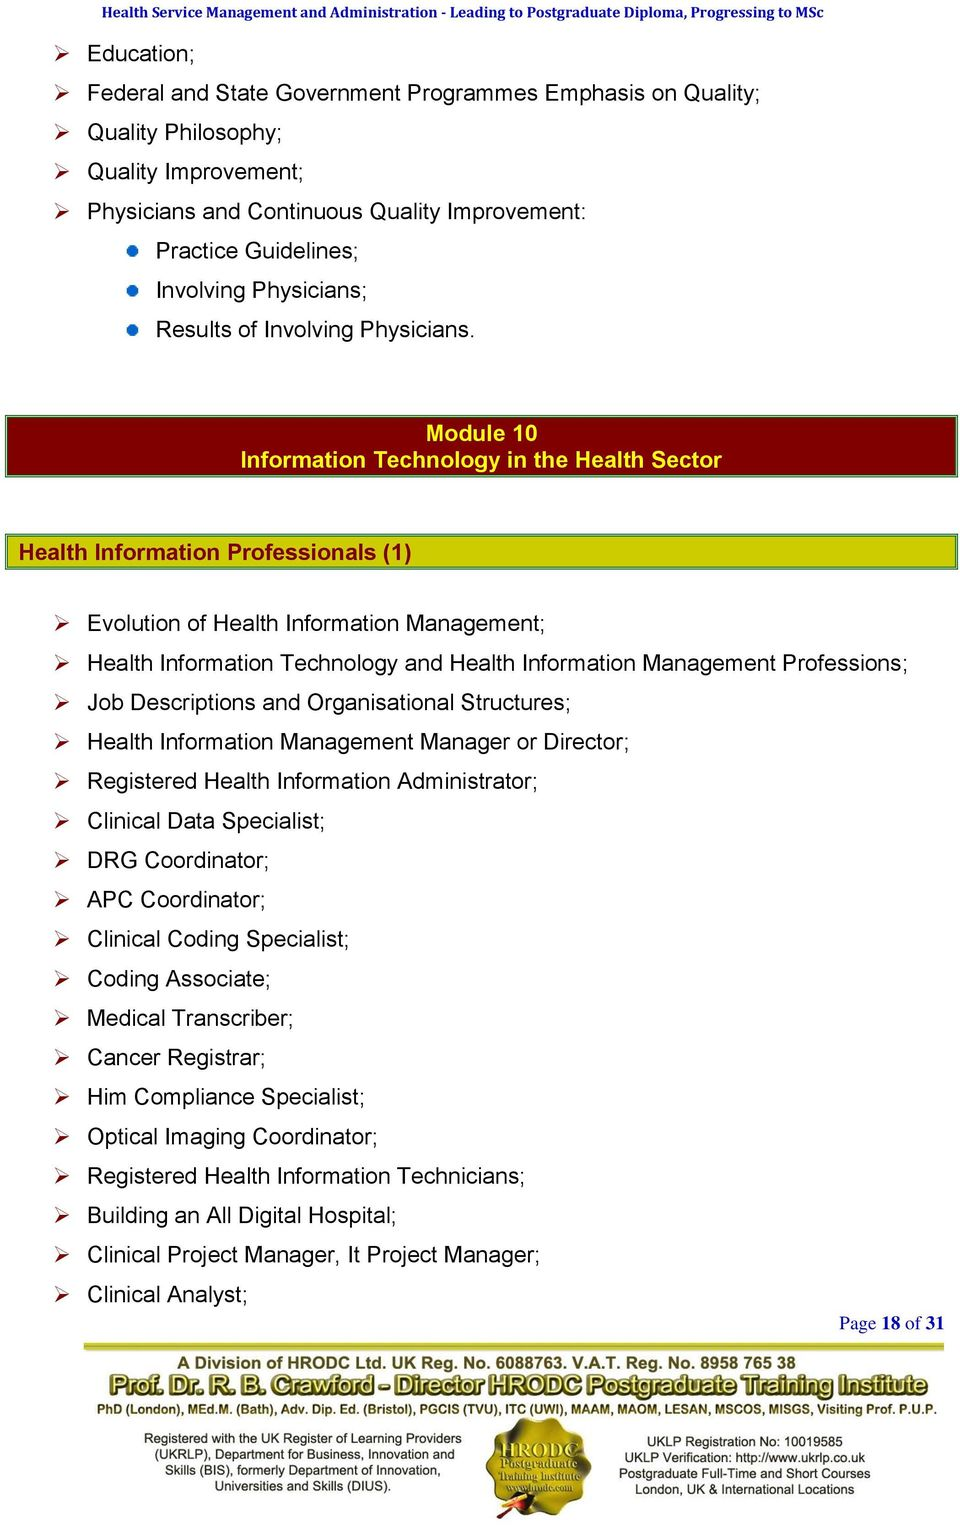 Module 10 Information Technology in the Health Sector Health Information Professionals (1) Evolution of Health Information Management; Health Information Technology and Health Information Management